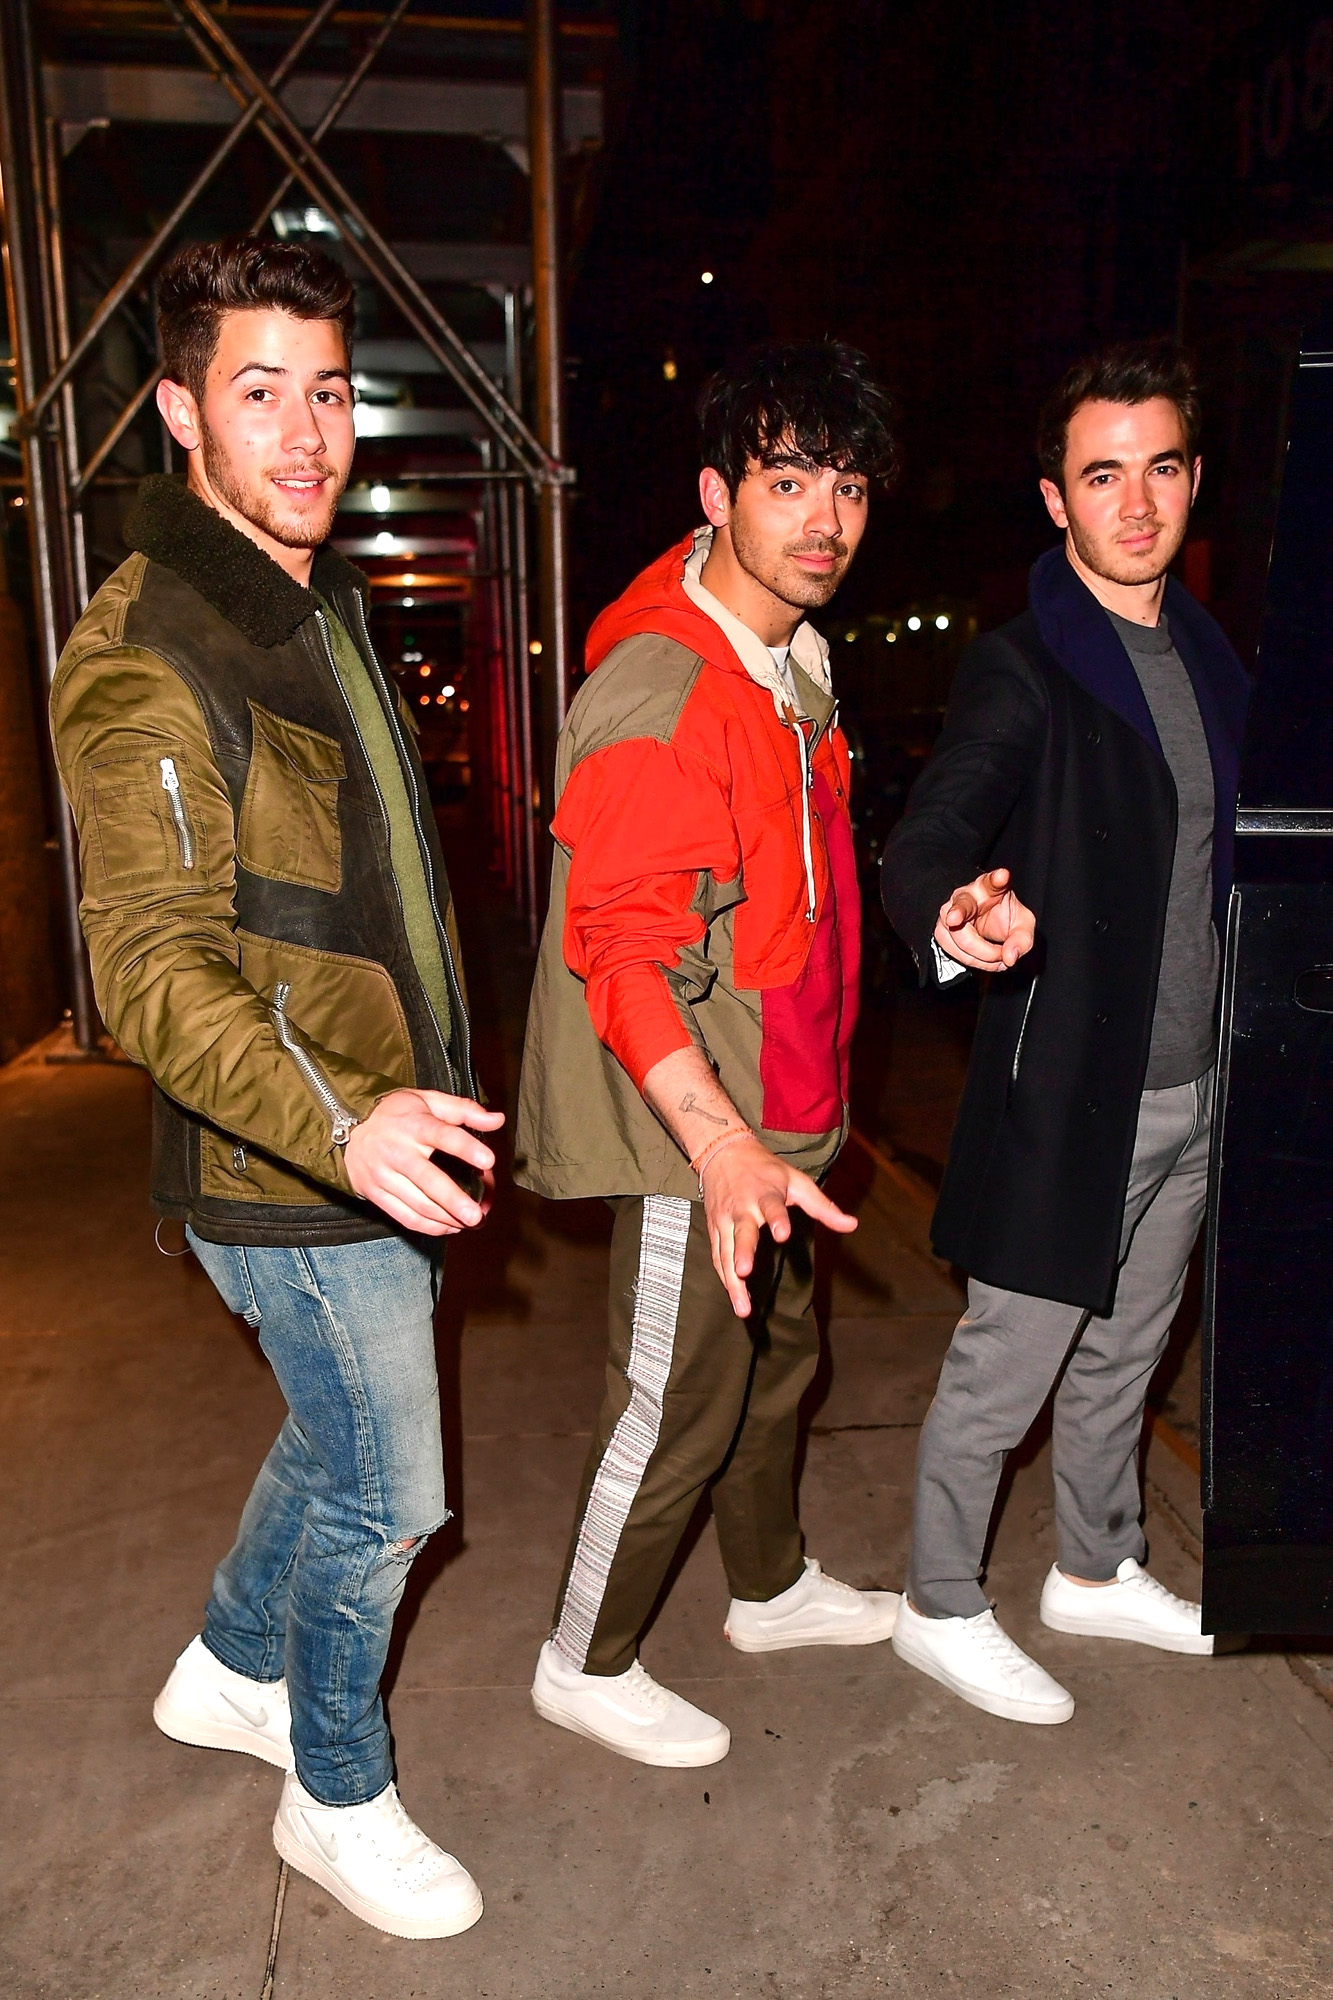 *EXCLUSIVE* The Jonas Brothers go to dinner as their new album 'Sucker' is released